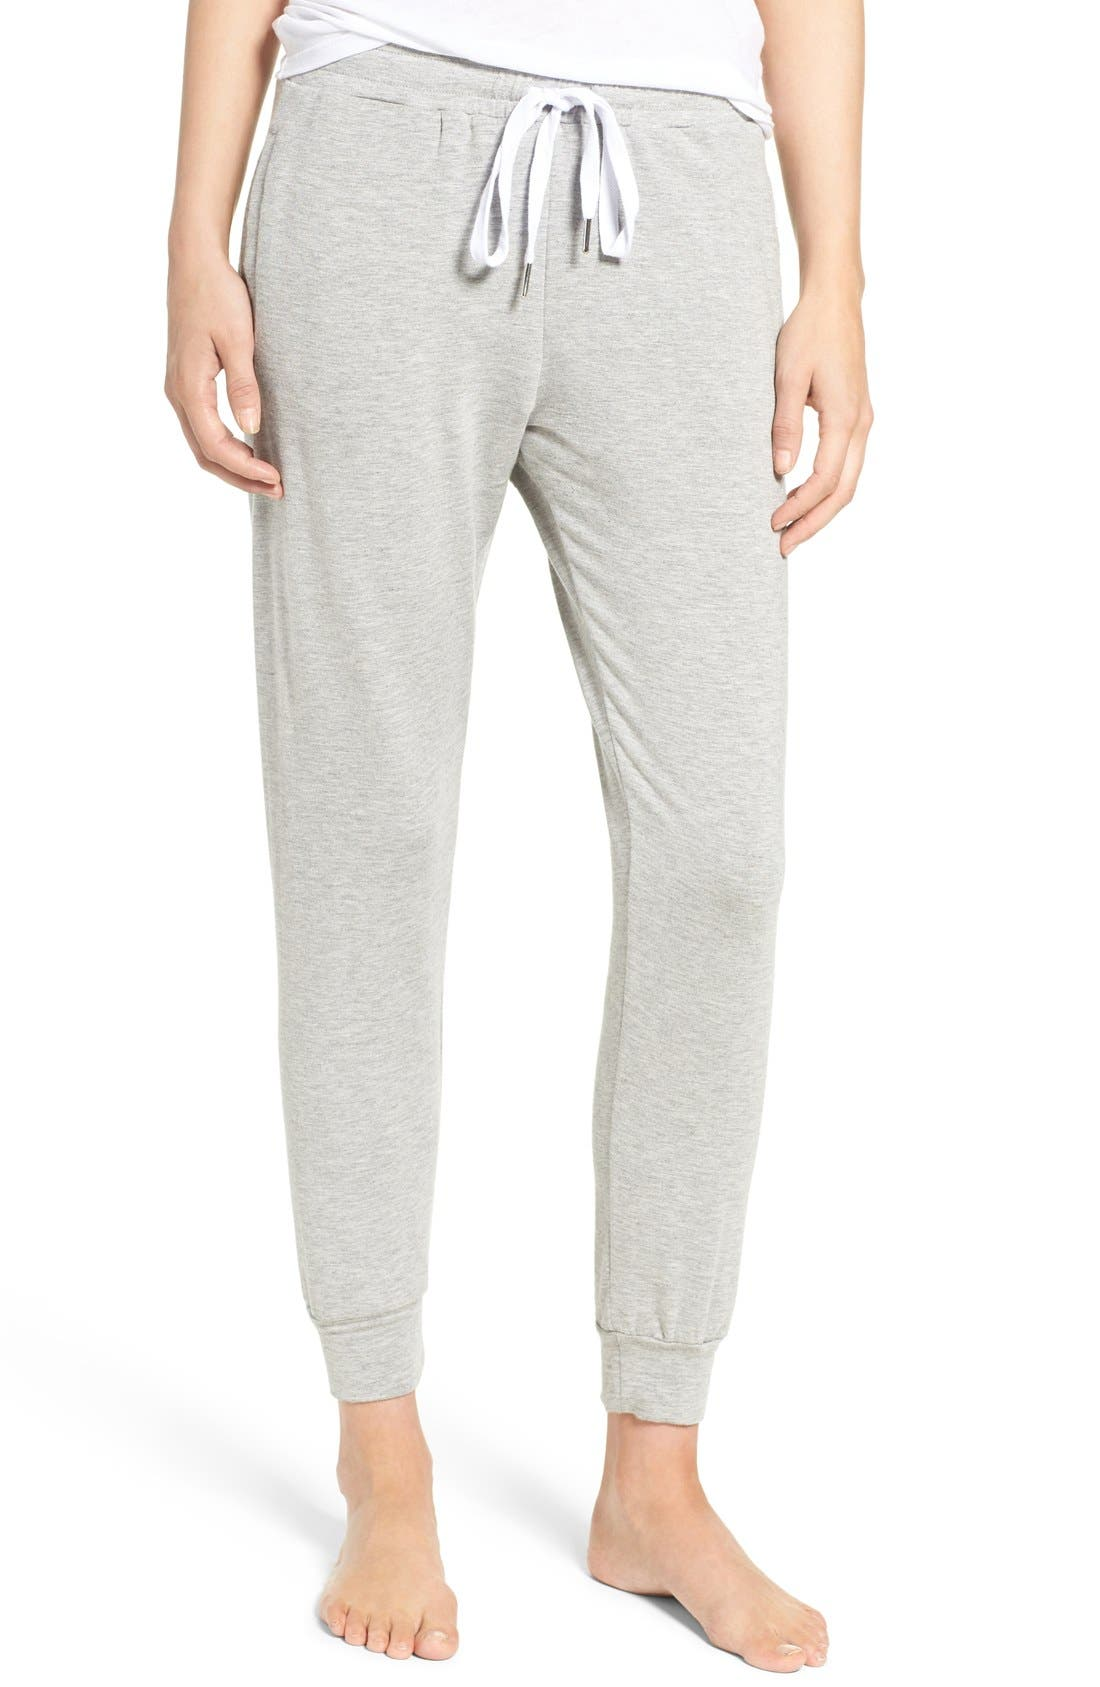 THE LAUNDRY ROOM LOUNGE PANTS